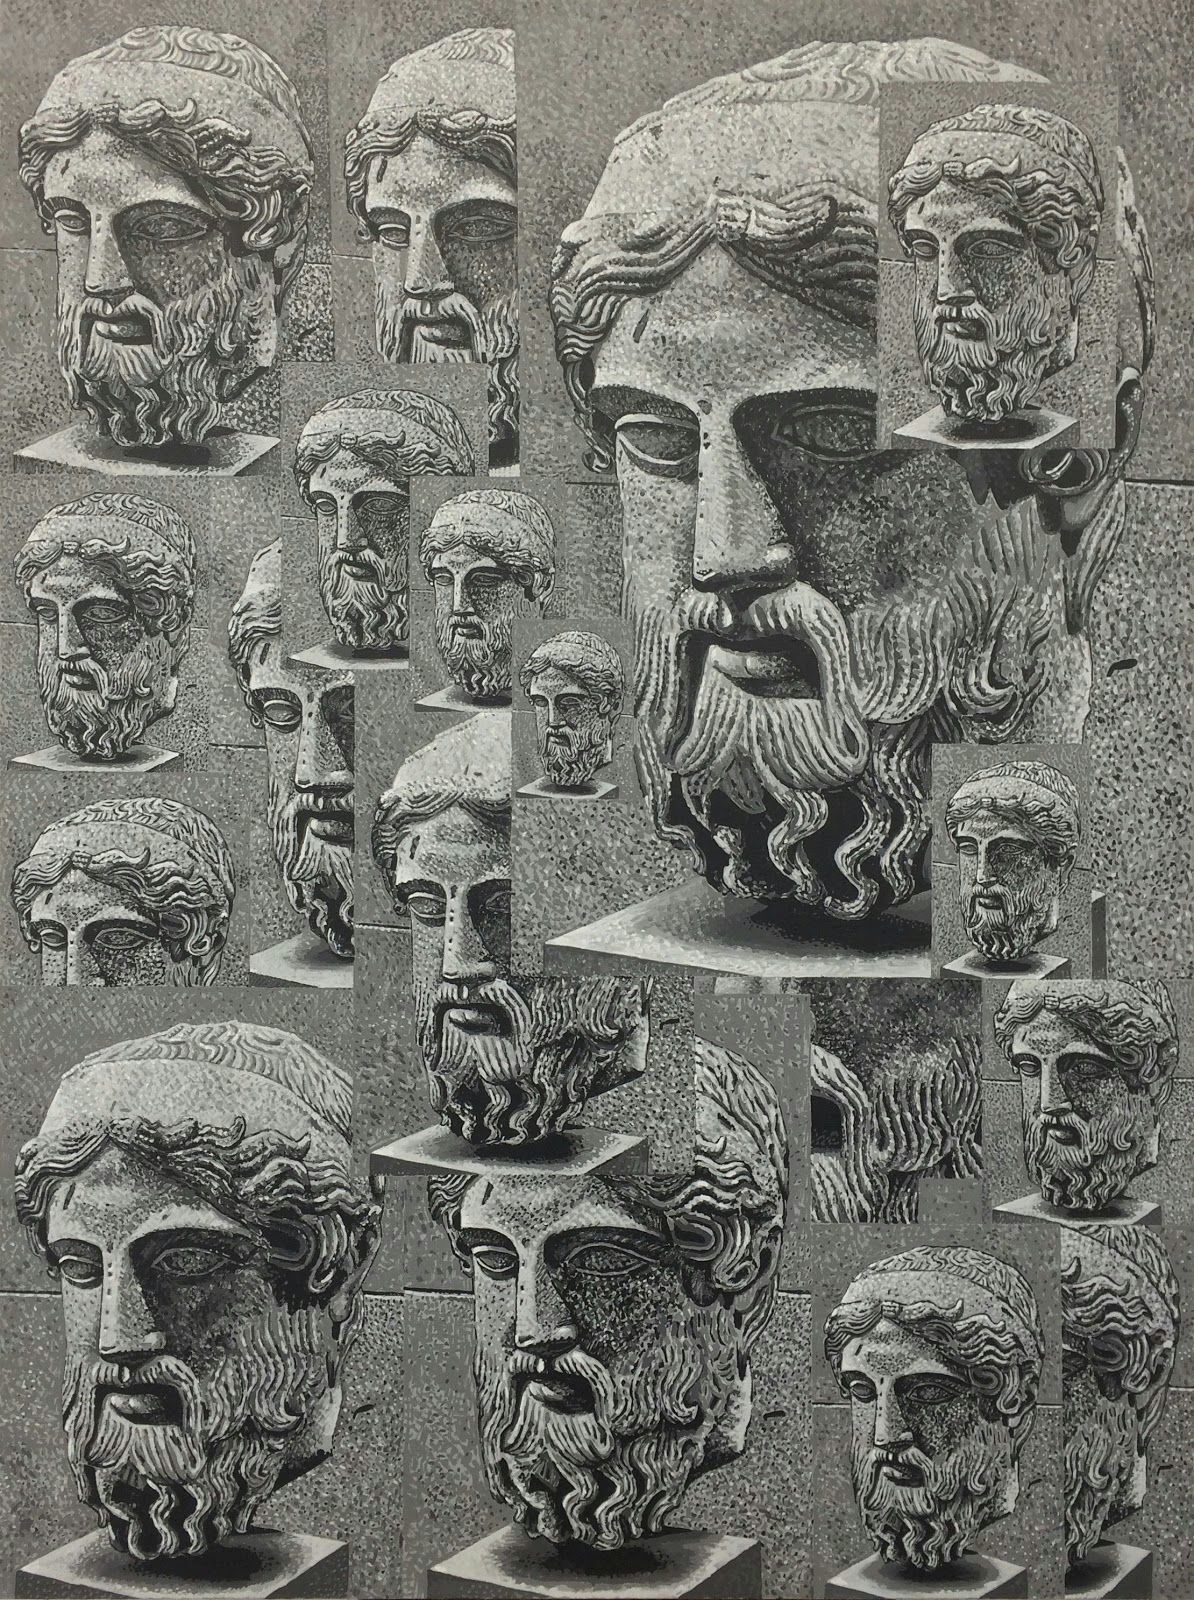 Overlapping Heads From a Herm